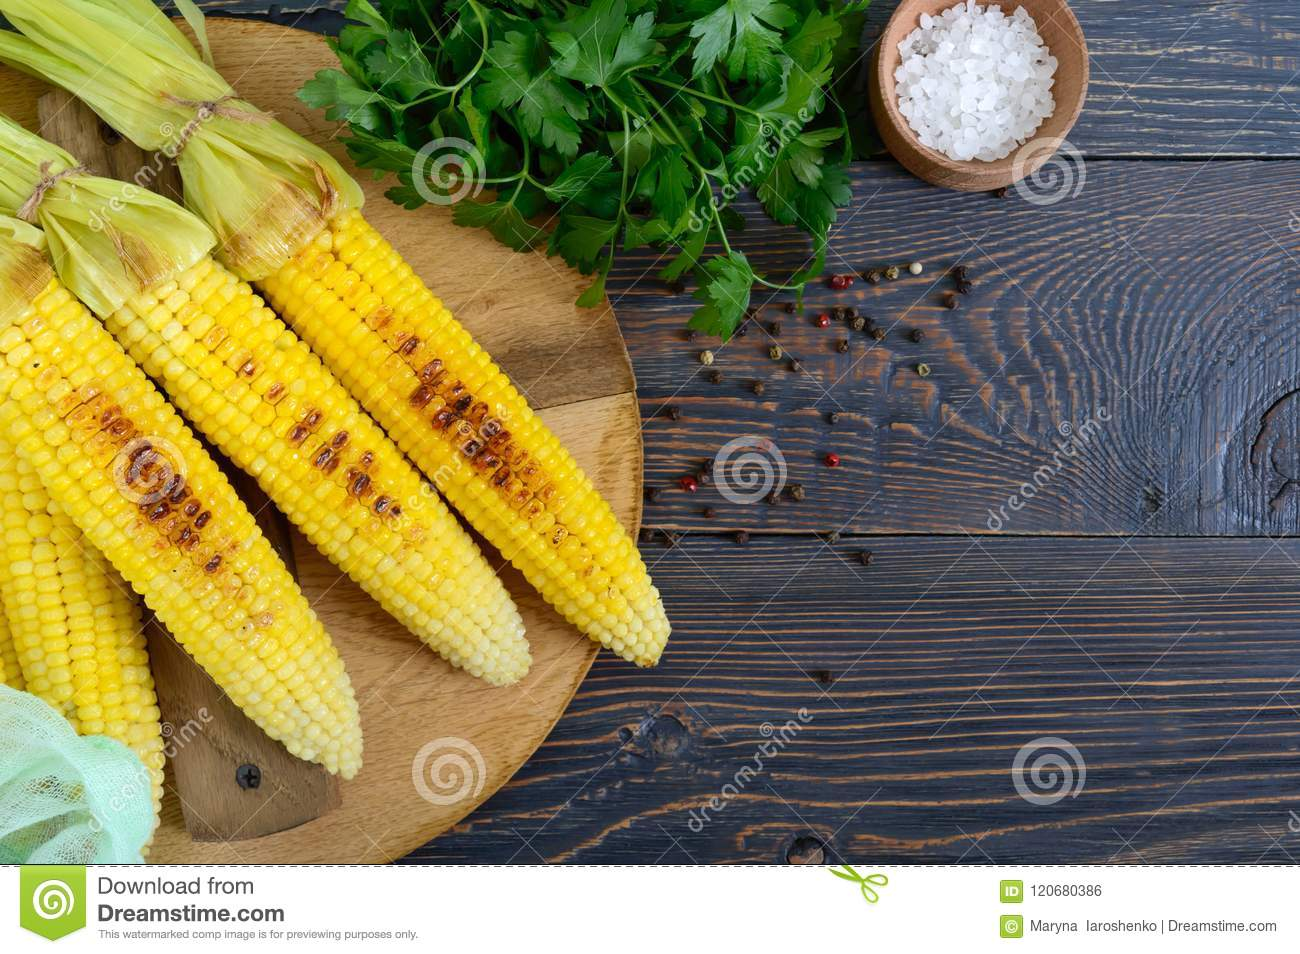 Fresh tasty grilled sweet corn with butter, sea salt and cilantro on a wooden table.